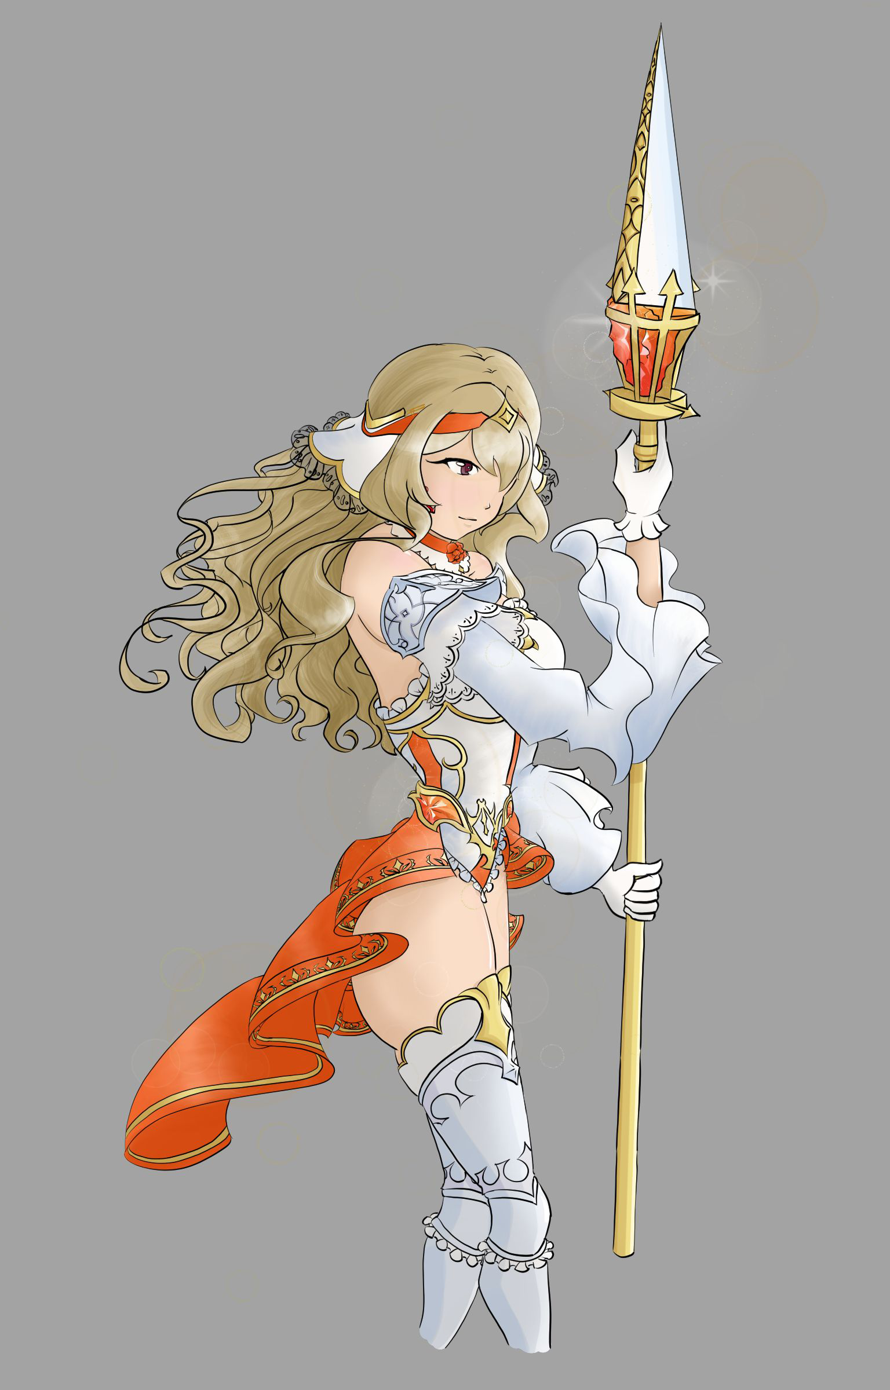 Drew the new Challenge Revue knight, Percival!